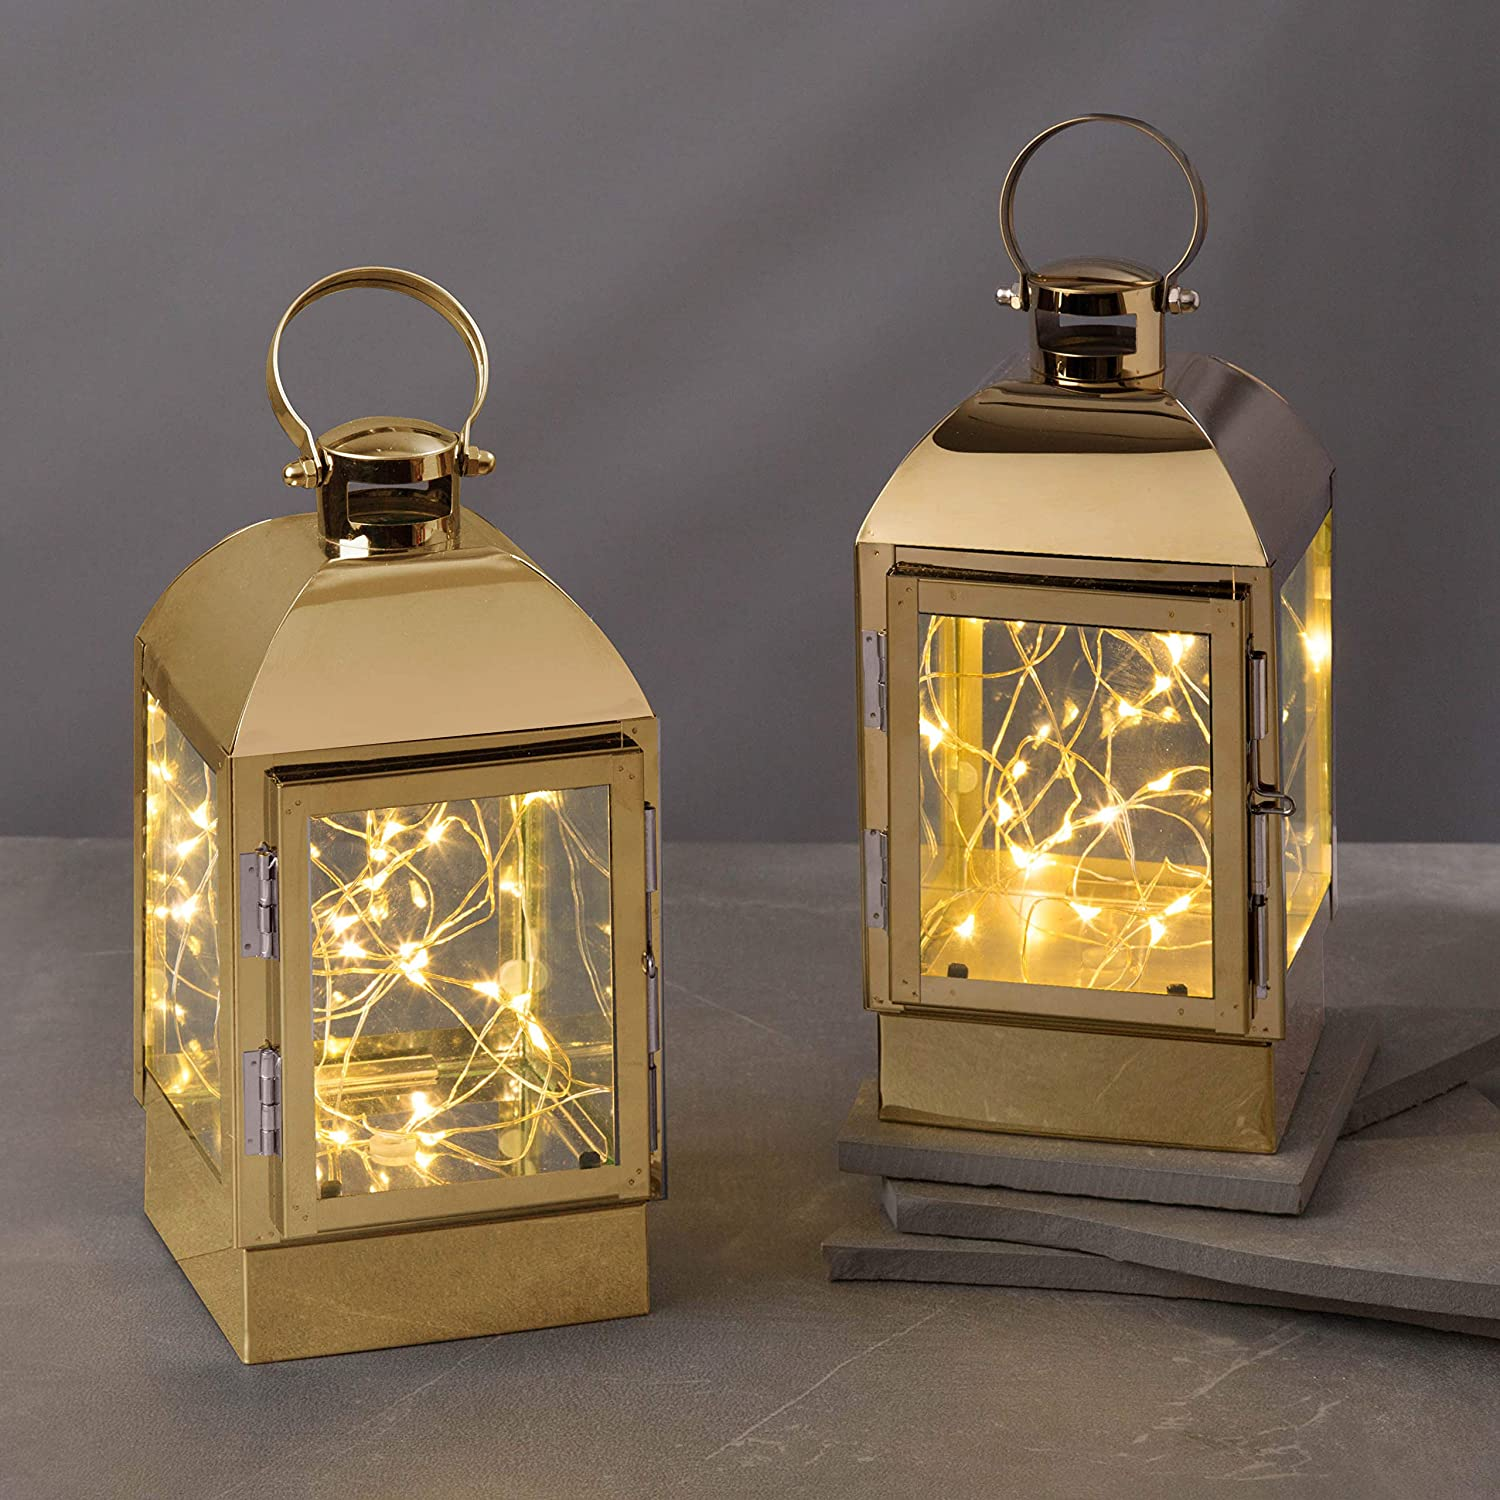 Decorative Lantern with Fairy Lights - Gold Metal, 8 Inch, Battery Operated, 30 Warm White LED Lights Inside, 6 Hour Timer, Spring Home Decor or Wedding Table, Batteries Included - 2 Pack